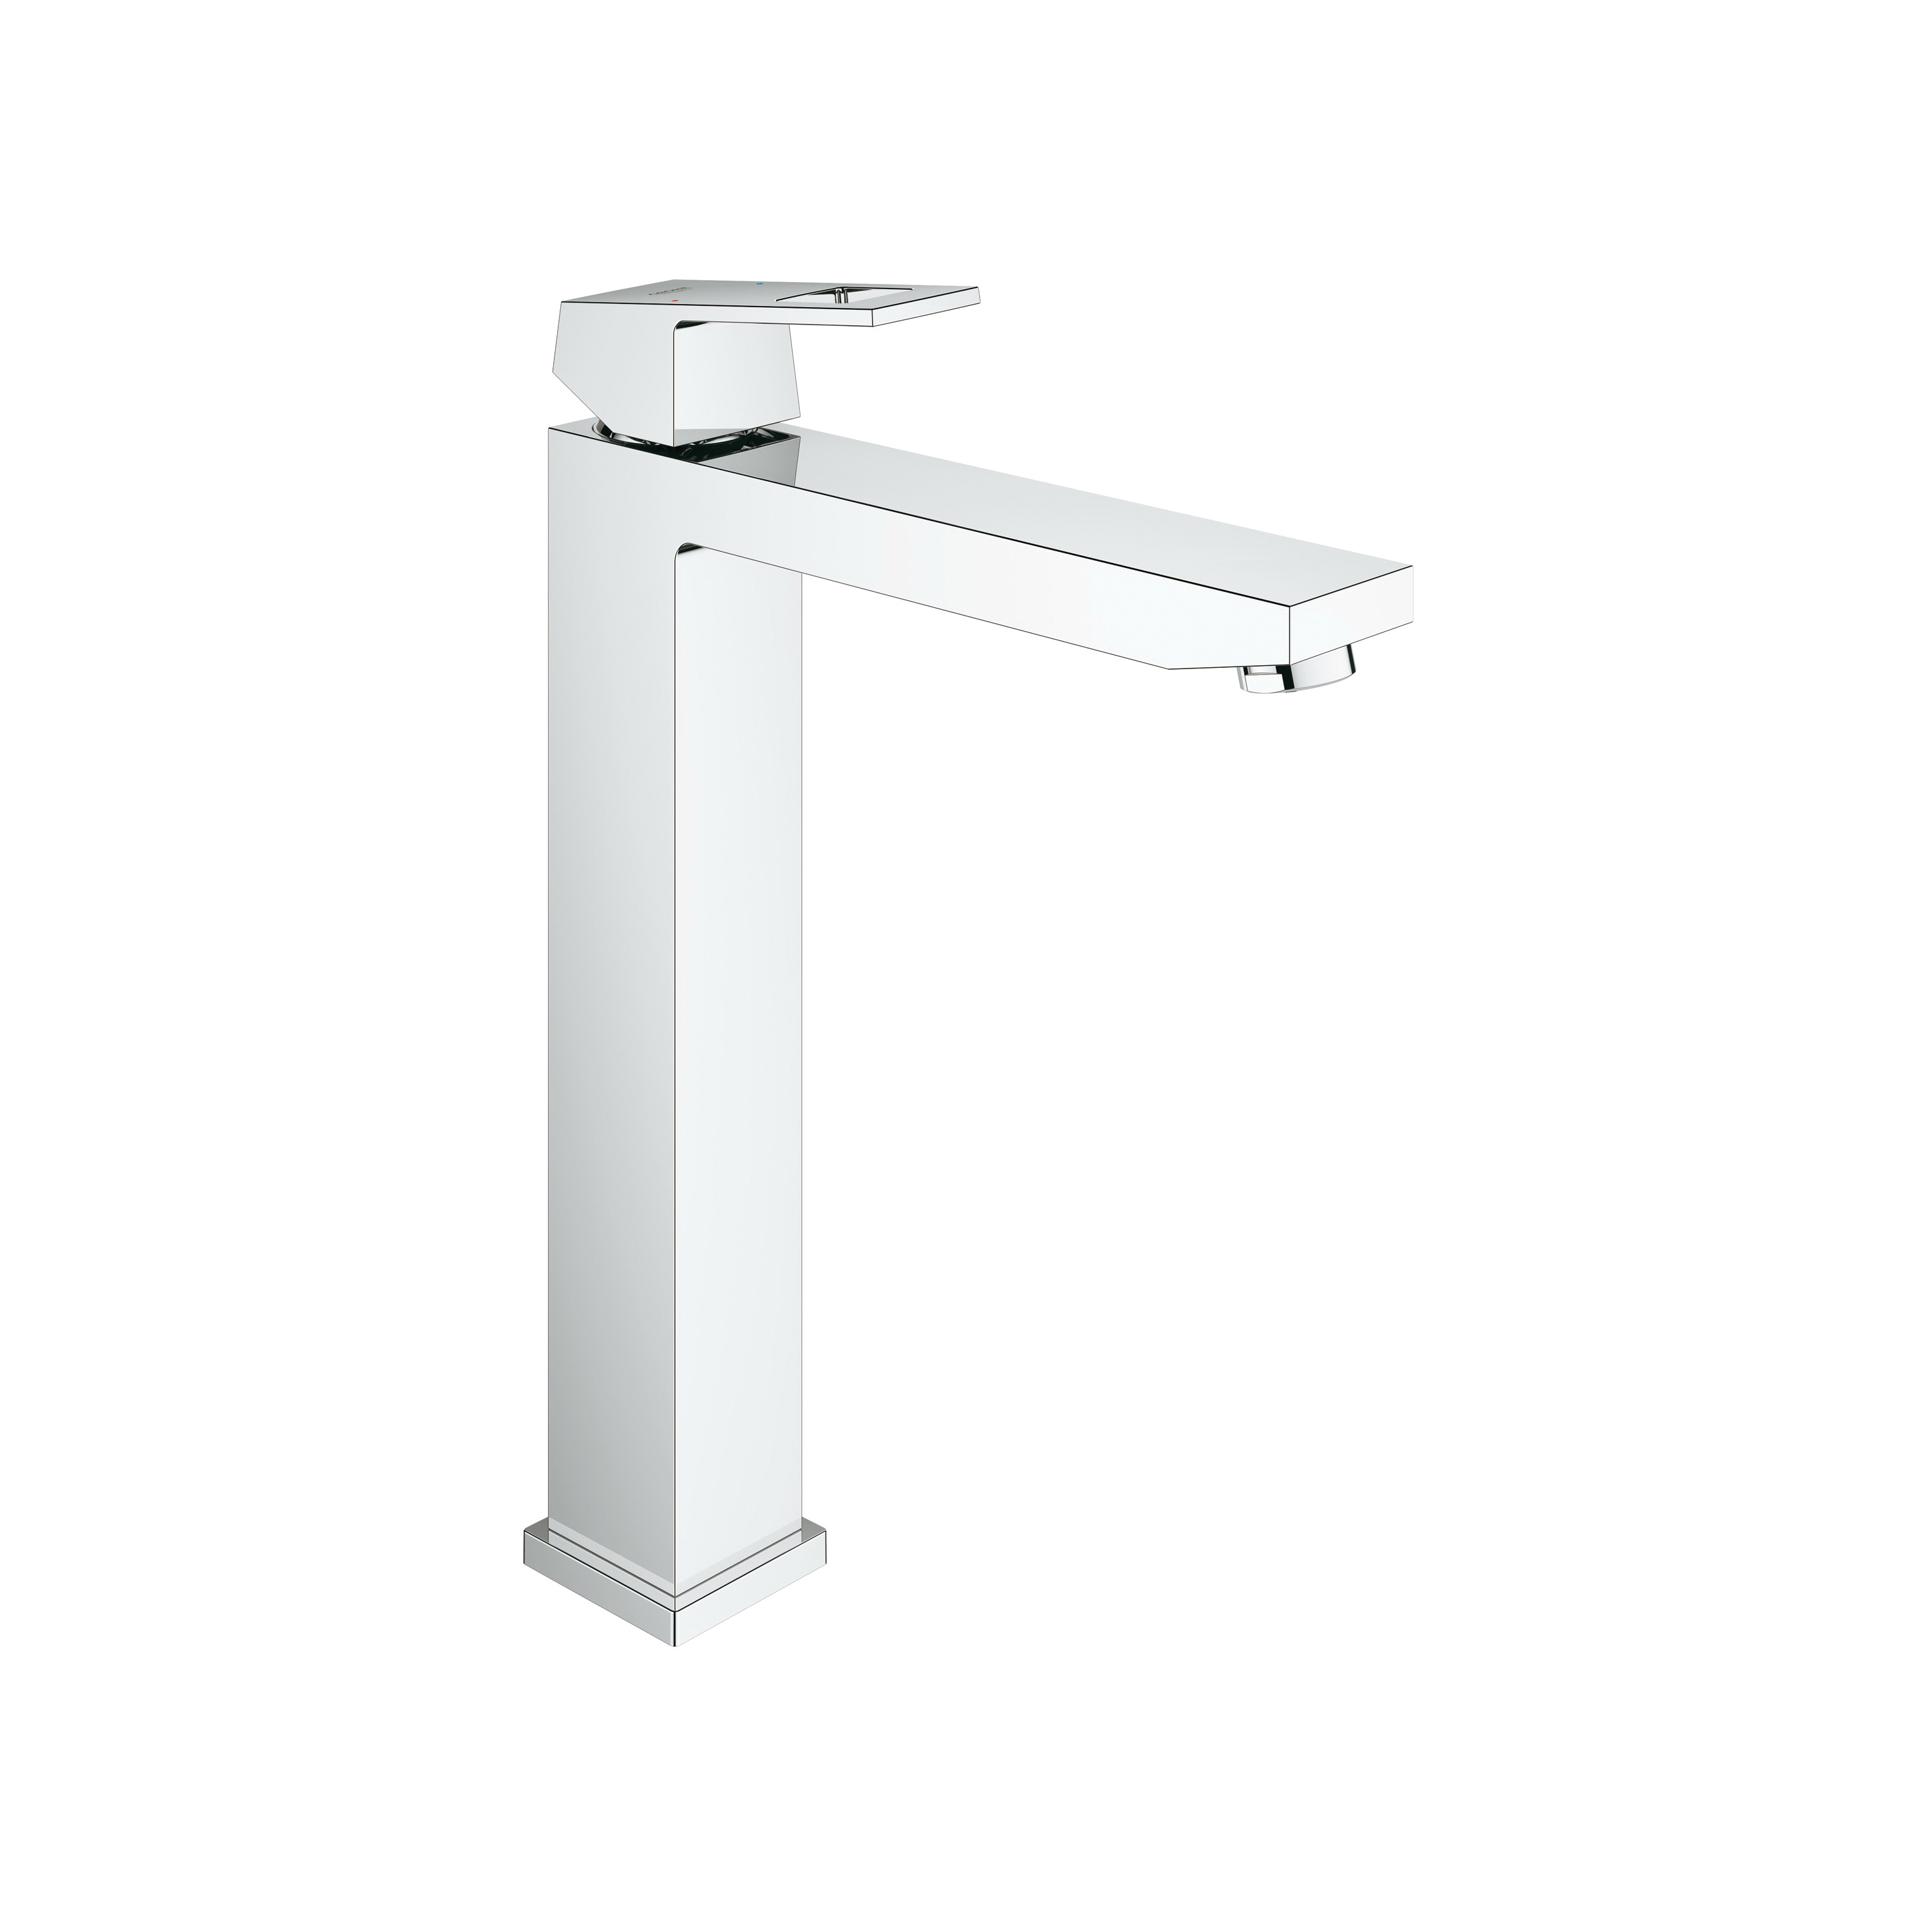 GROHE 23671000 Eurocube® Bathroom Basin Mixer With Temperature Limiter, 1.5 gpm, 9-13/16 in H Spout, 1 Handle, 1 Faucet Hole, StarLight® Chrome, Import